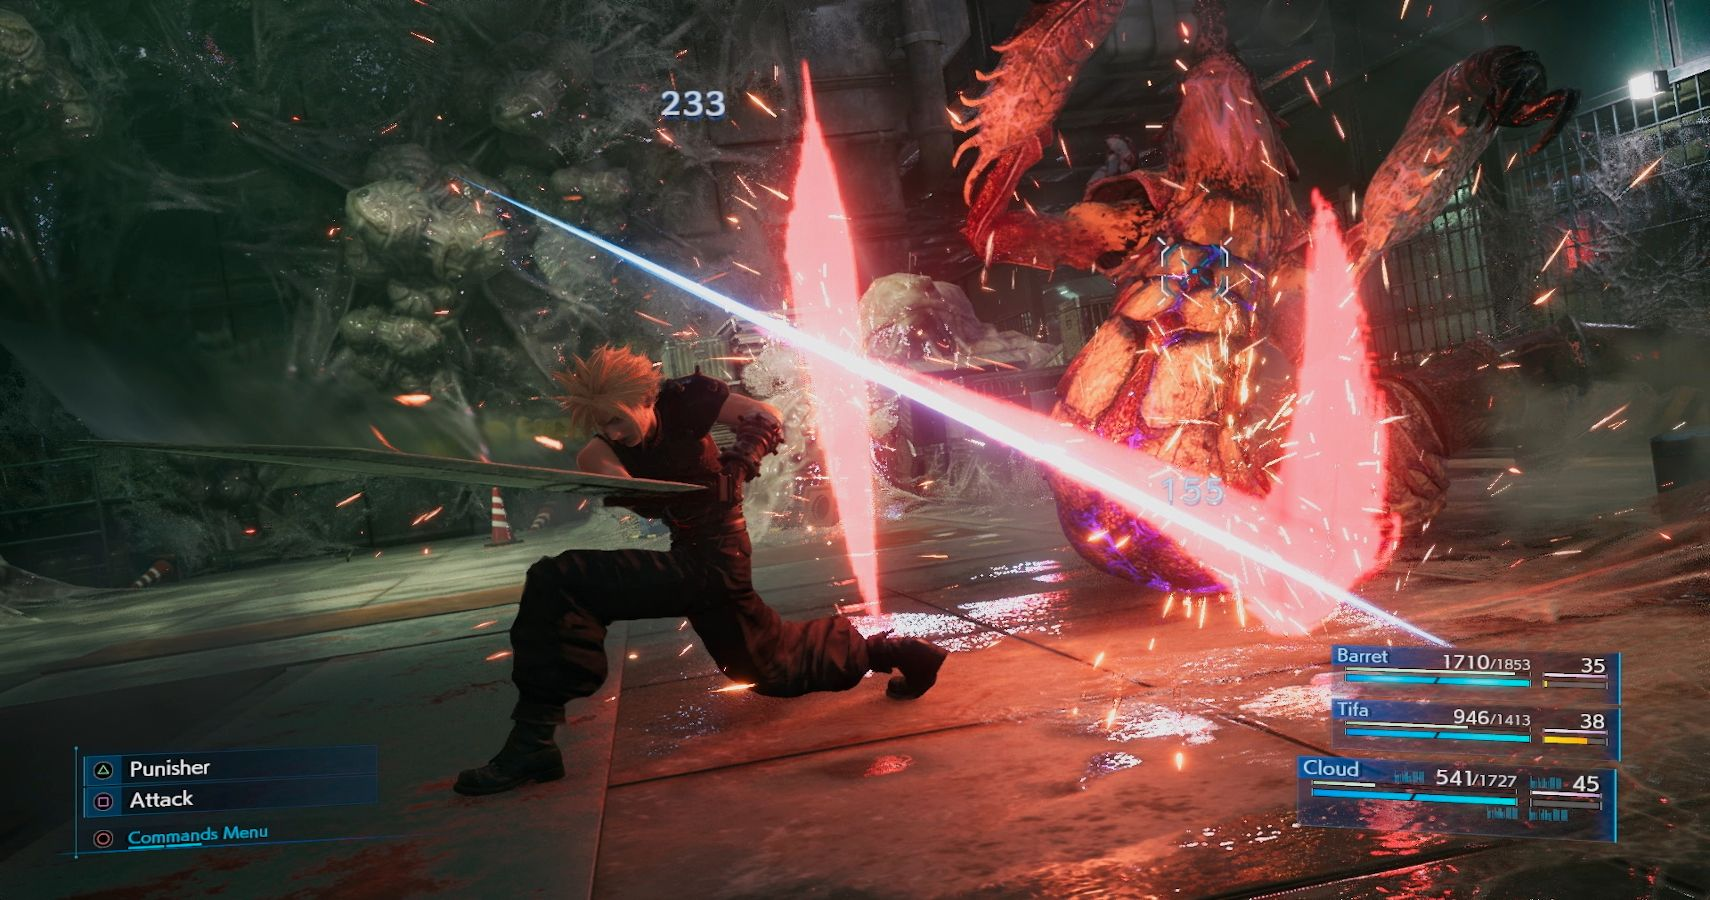 Final Fantasy VII Remake combat system problems, needs Final Fantasy XII Gambit system for party members